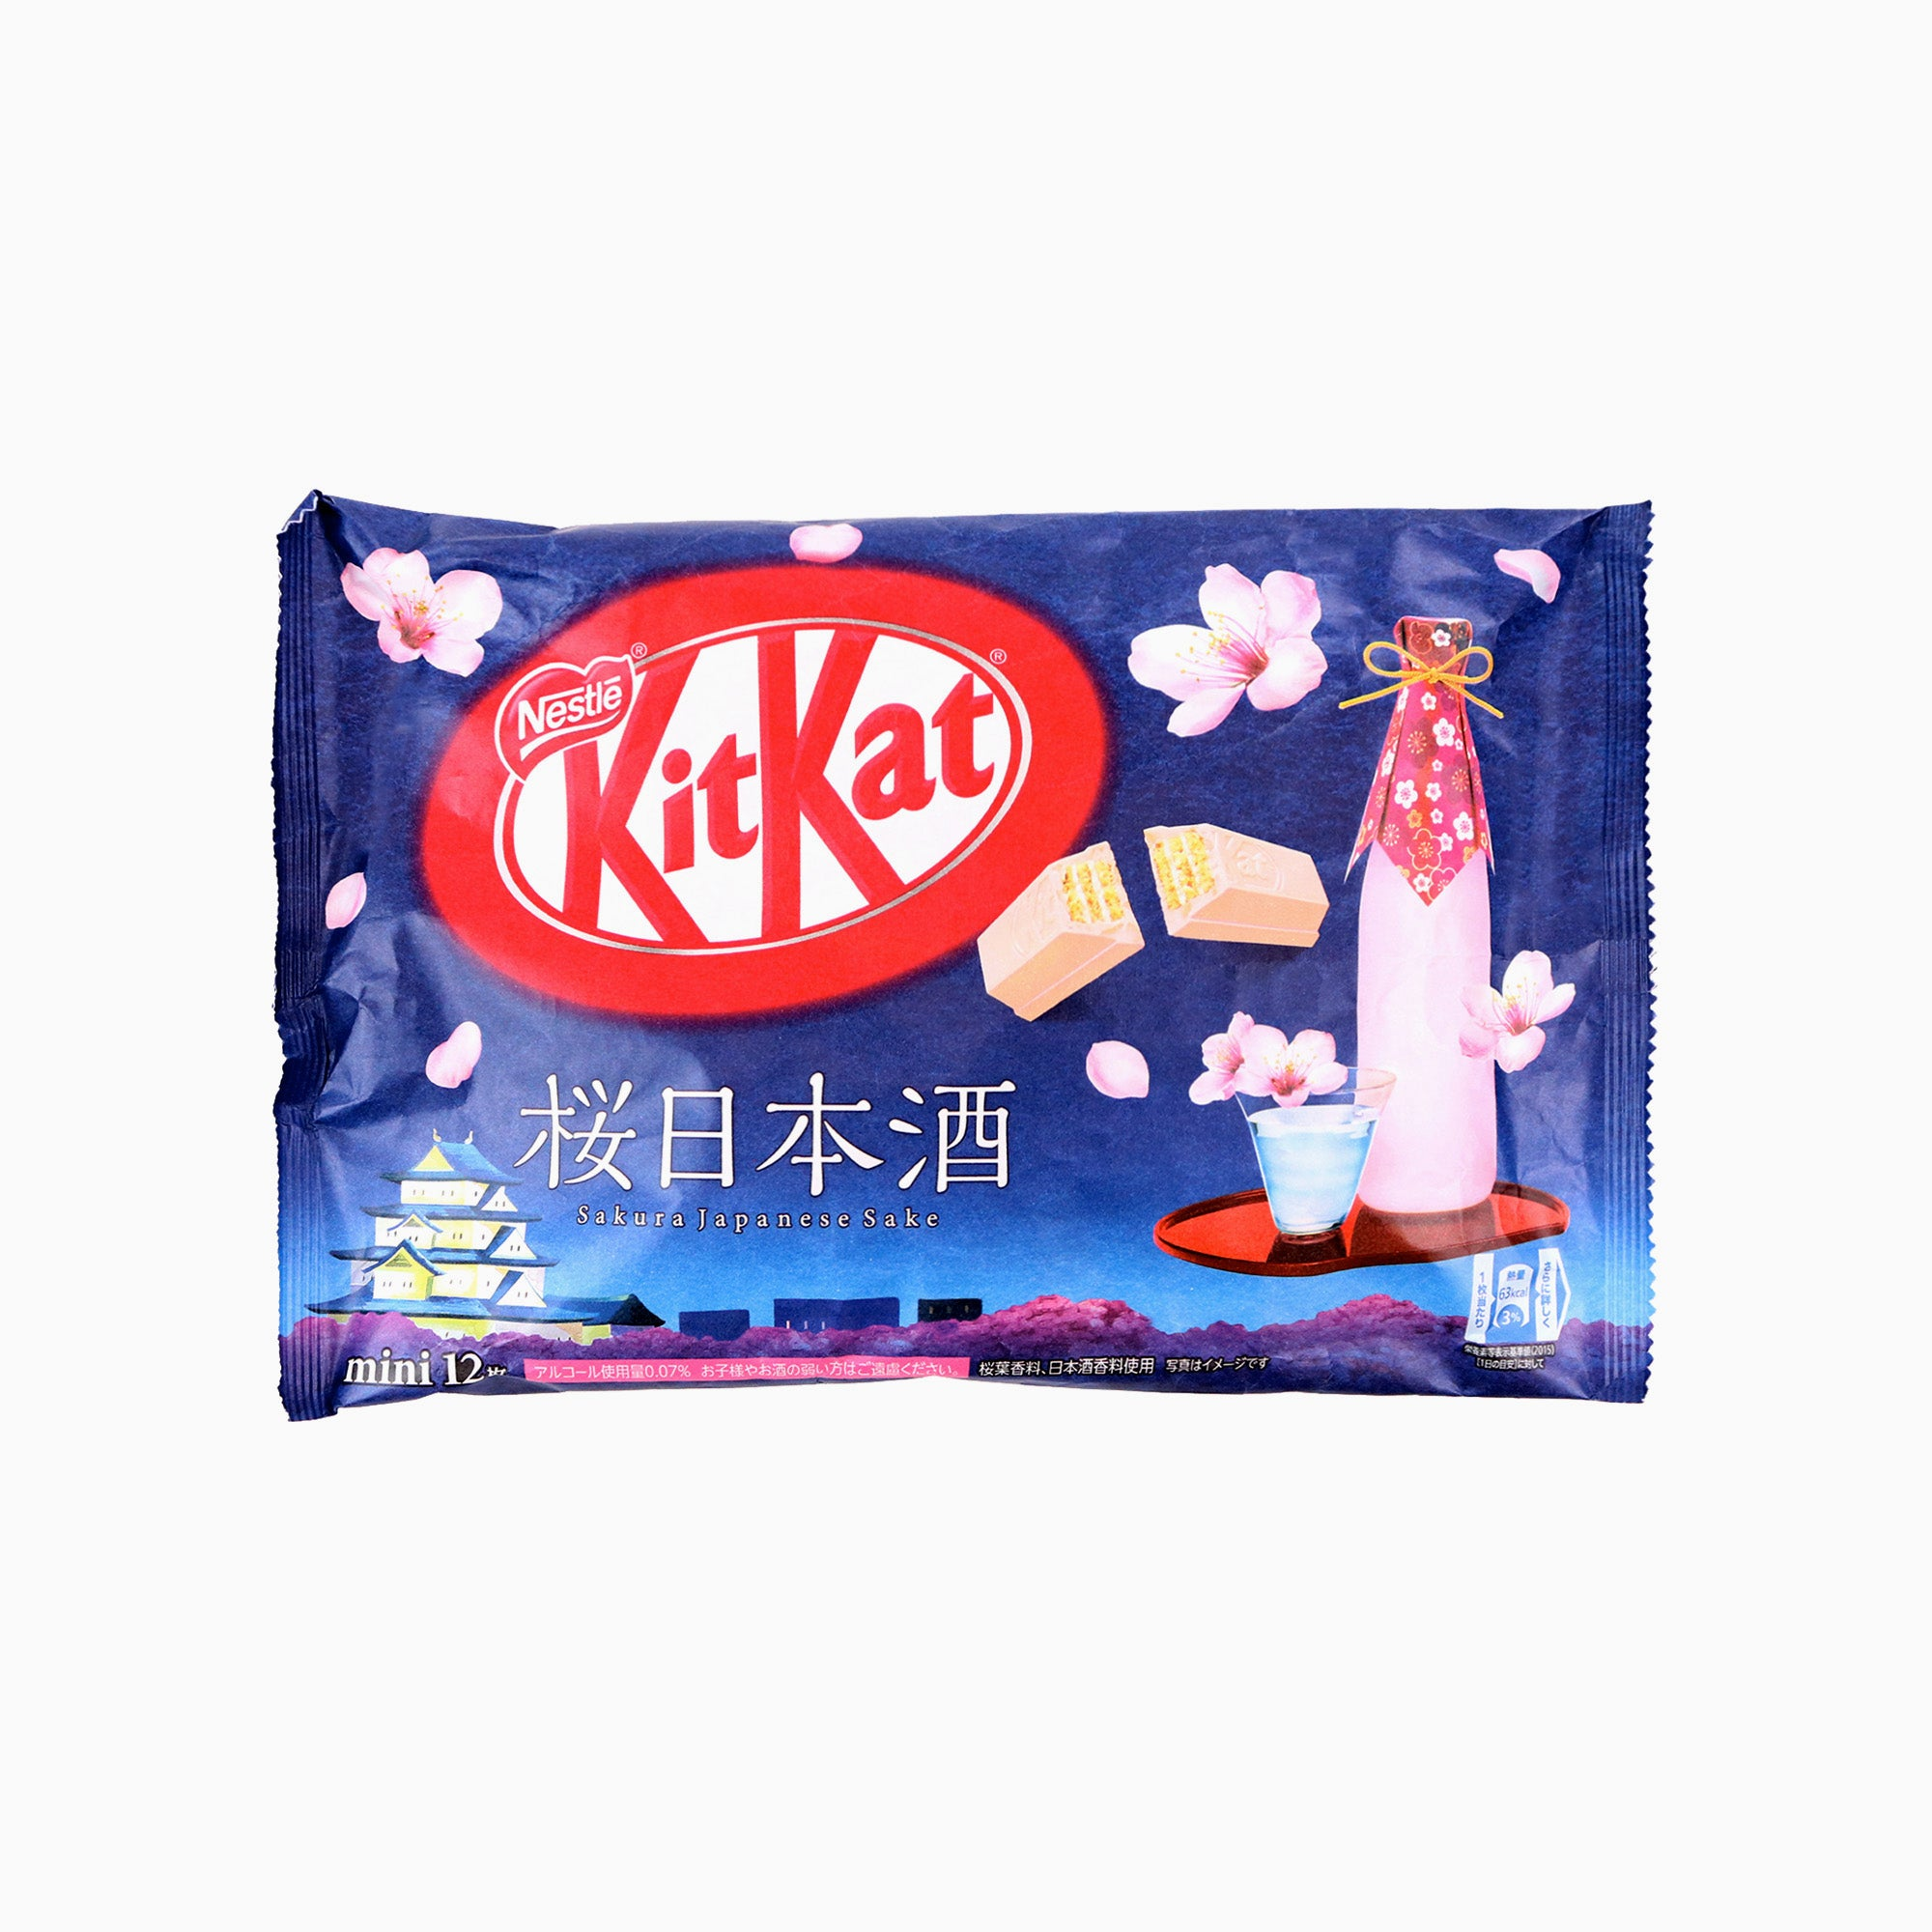 Japanese Kit Kat: Sakura Nihonshu Sake (12 Pieces)